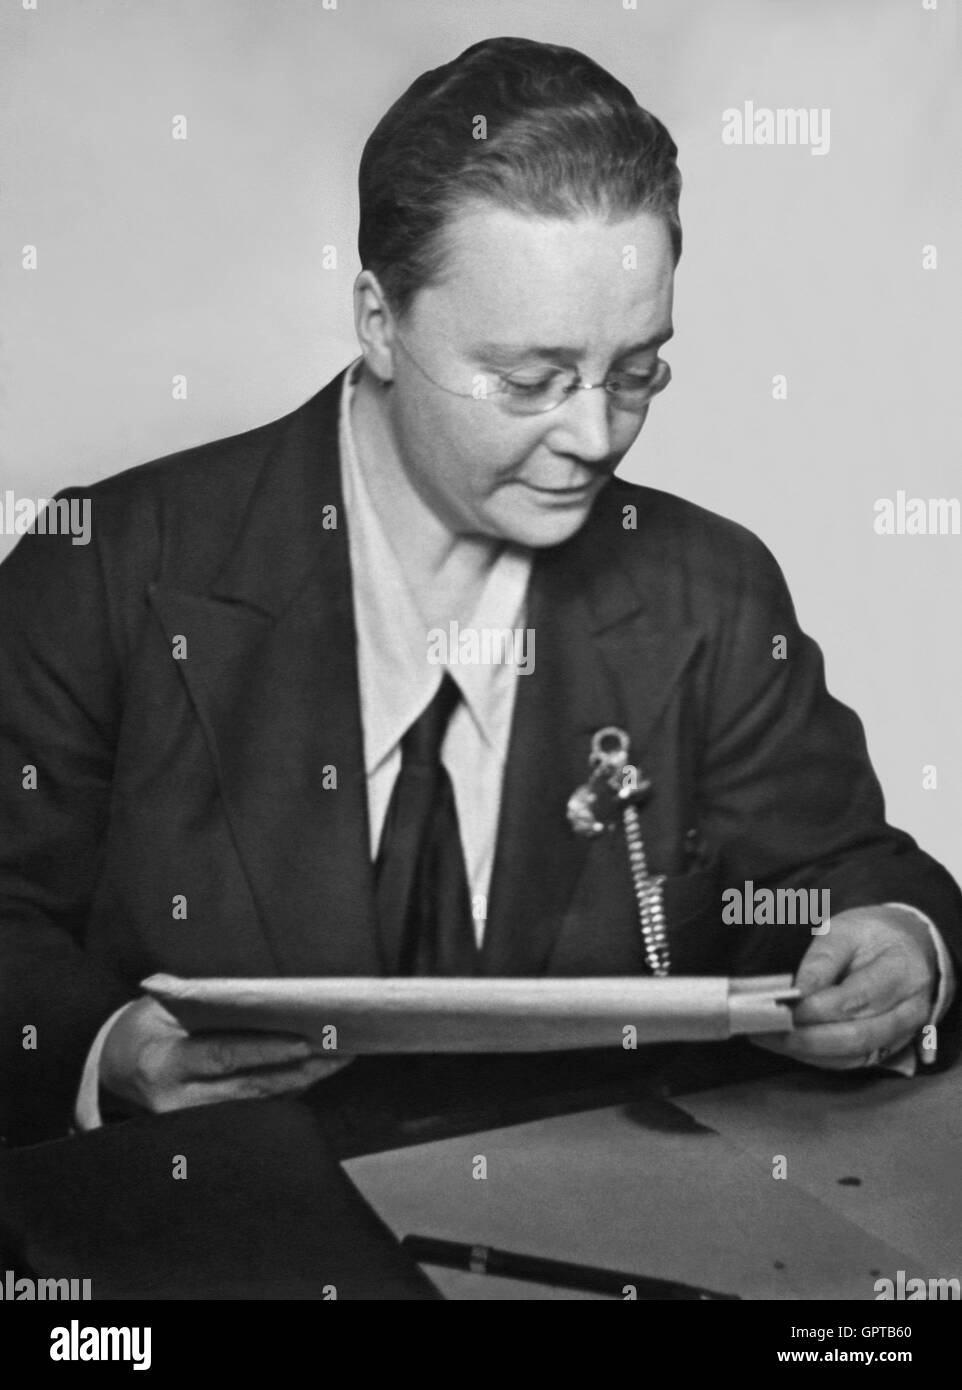 Dorothy Sayers (1893-1957), renowned English writer often considered one of the British authors informally known - Stock Image